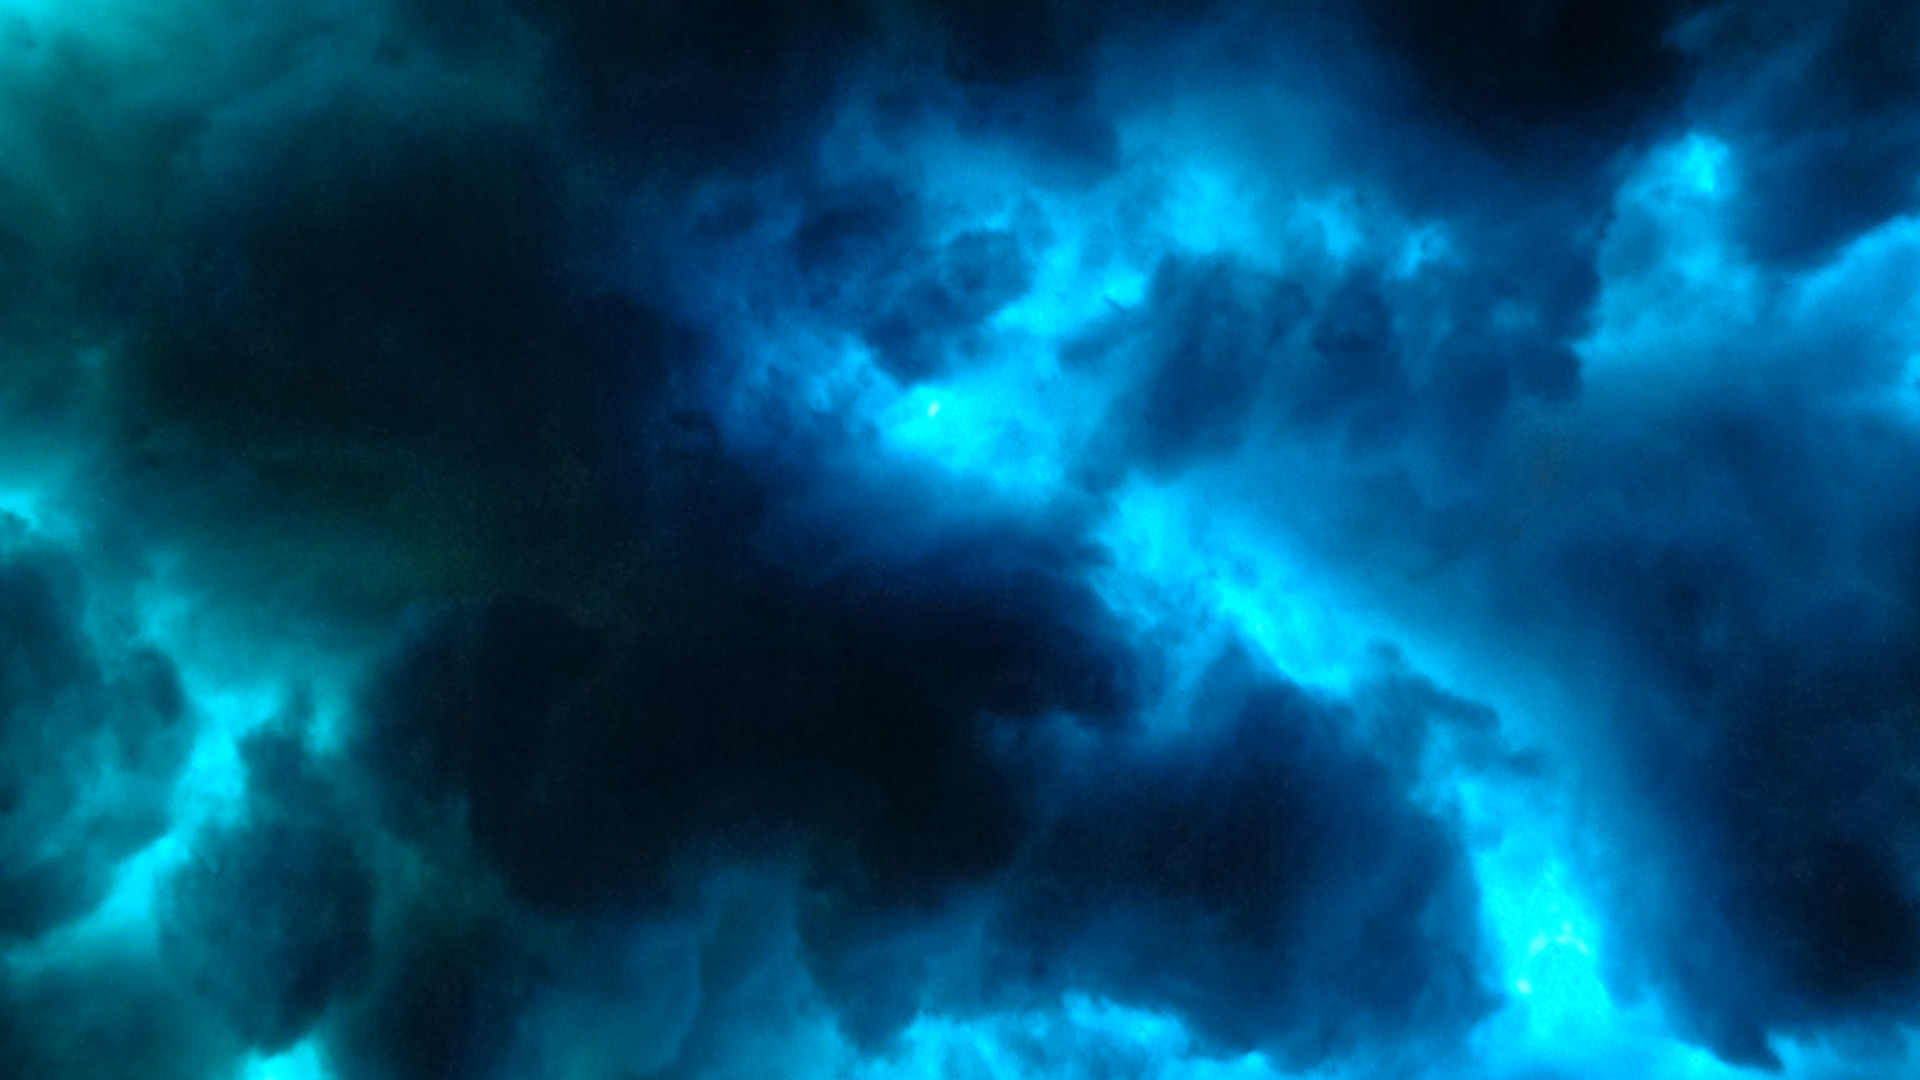 An art installation that looks like blue and black, ominous clouds